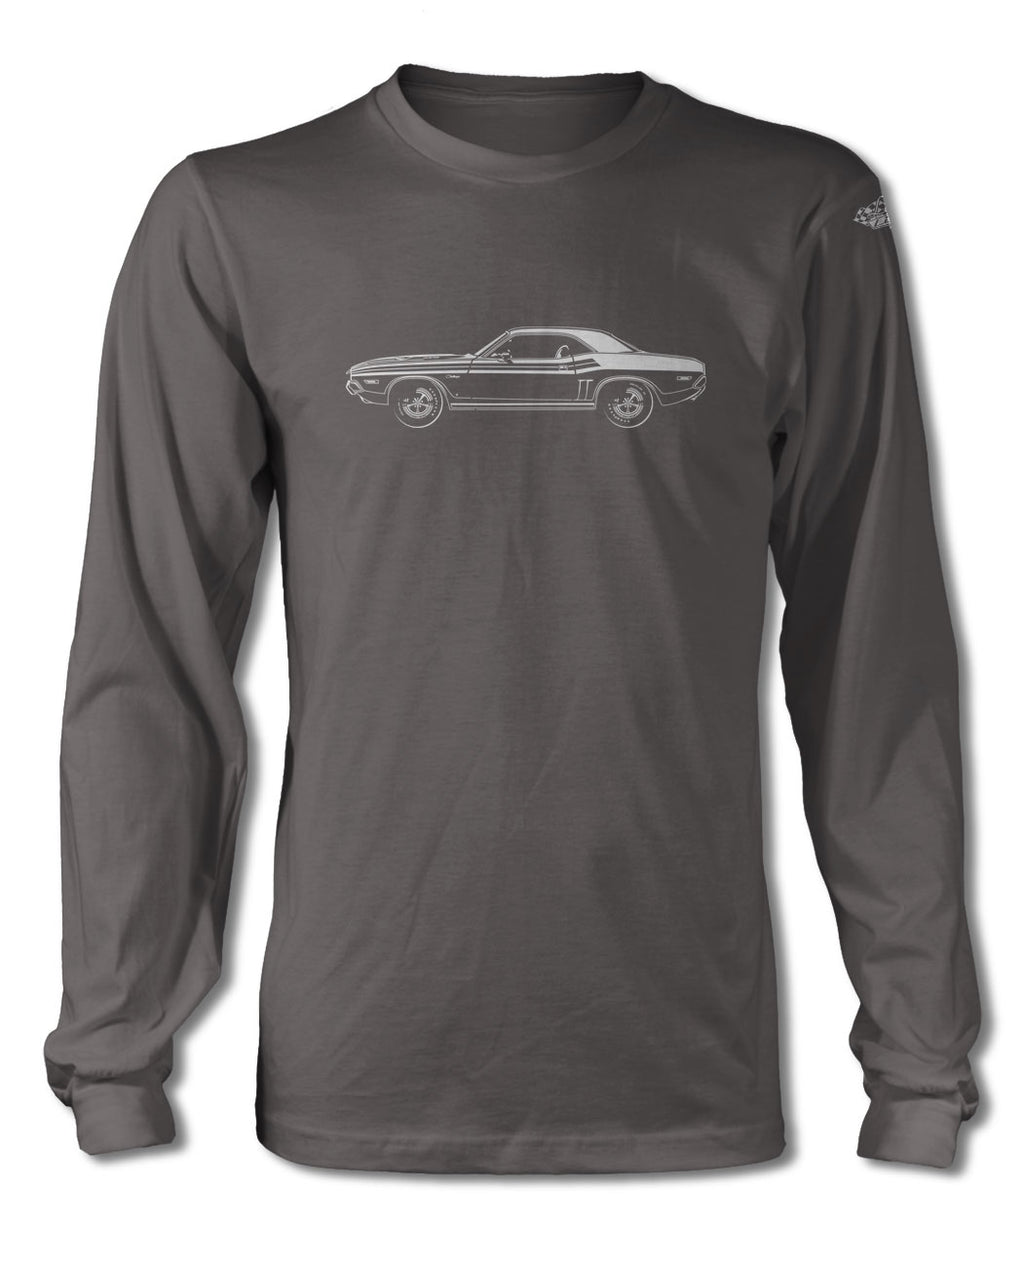 1971 Dodge Challenger with Stripes Coupe T-Shirt - Long Sleeves - Side View